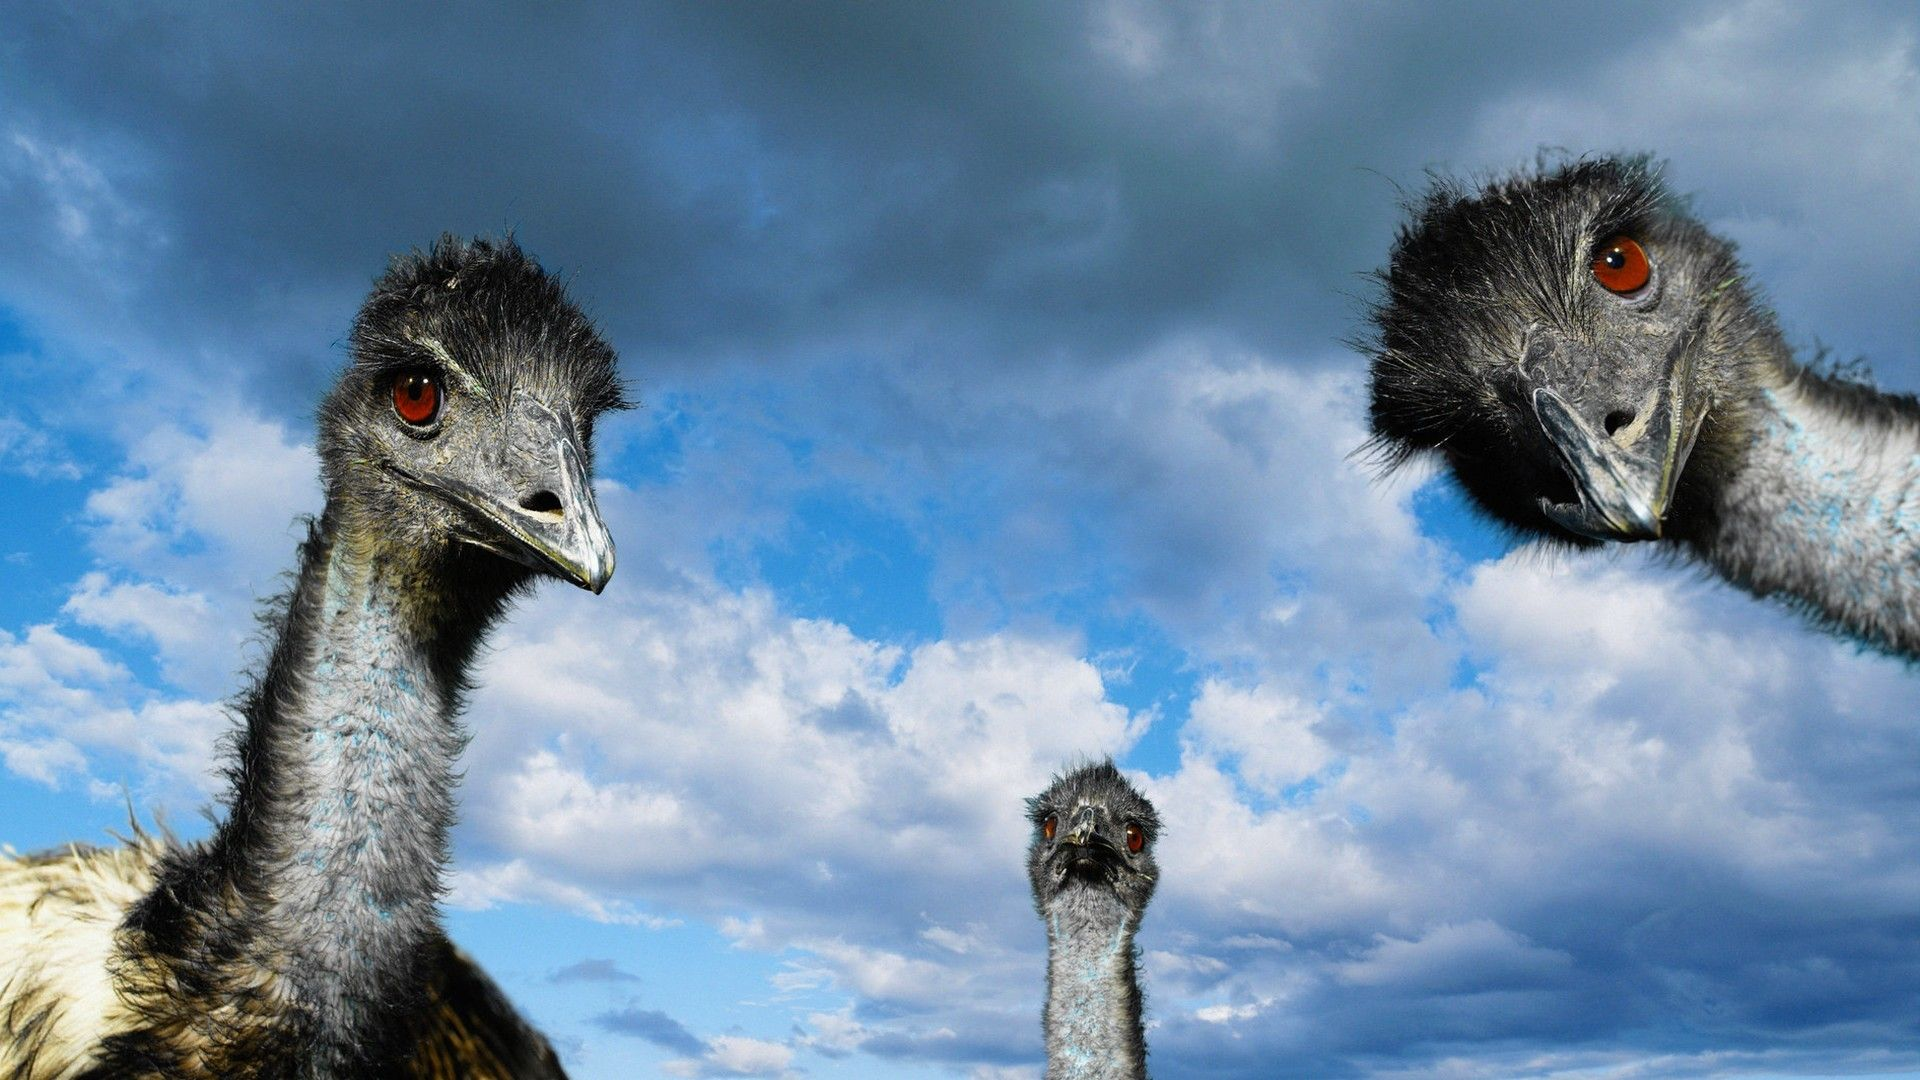 Ostrich download free wallpaper image search